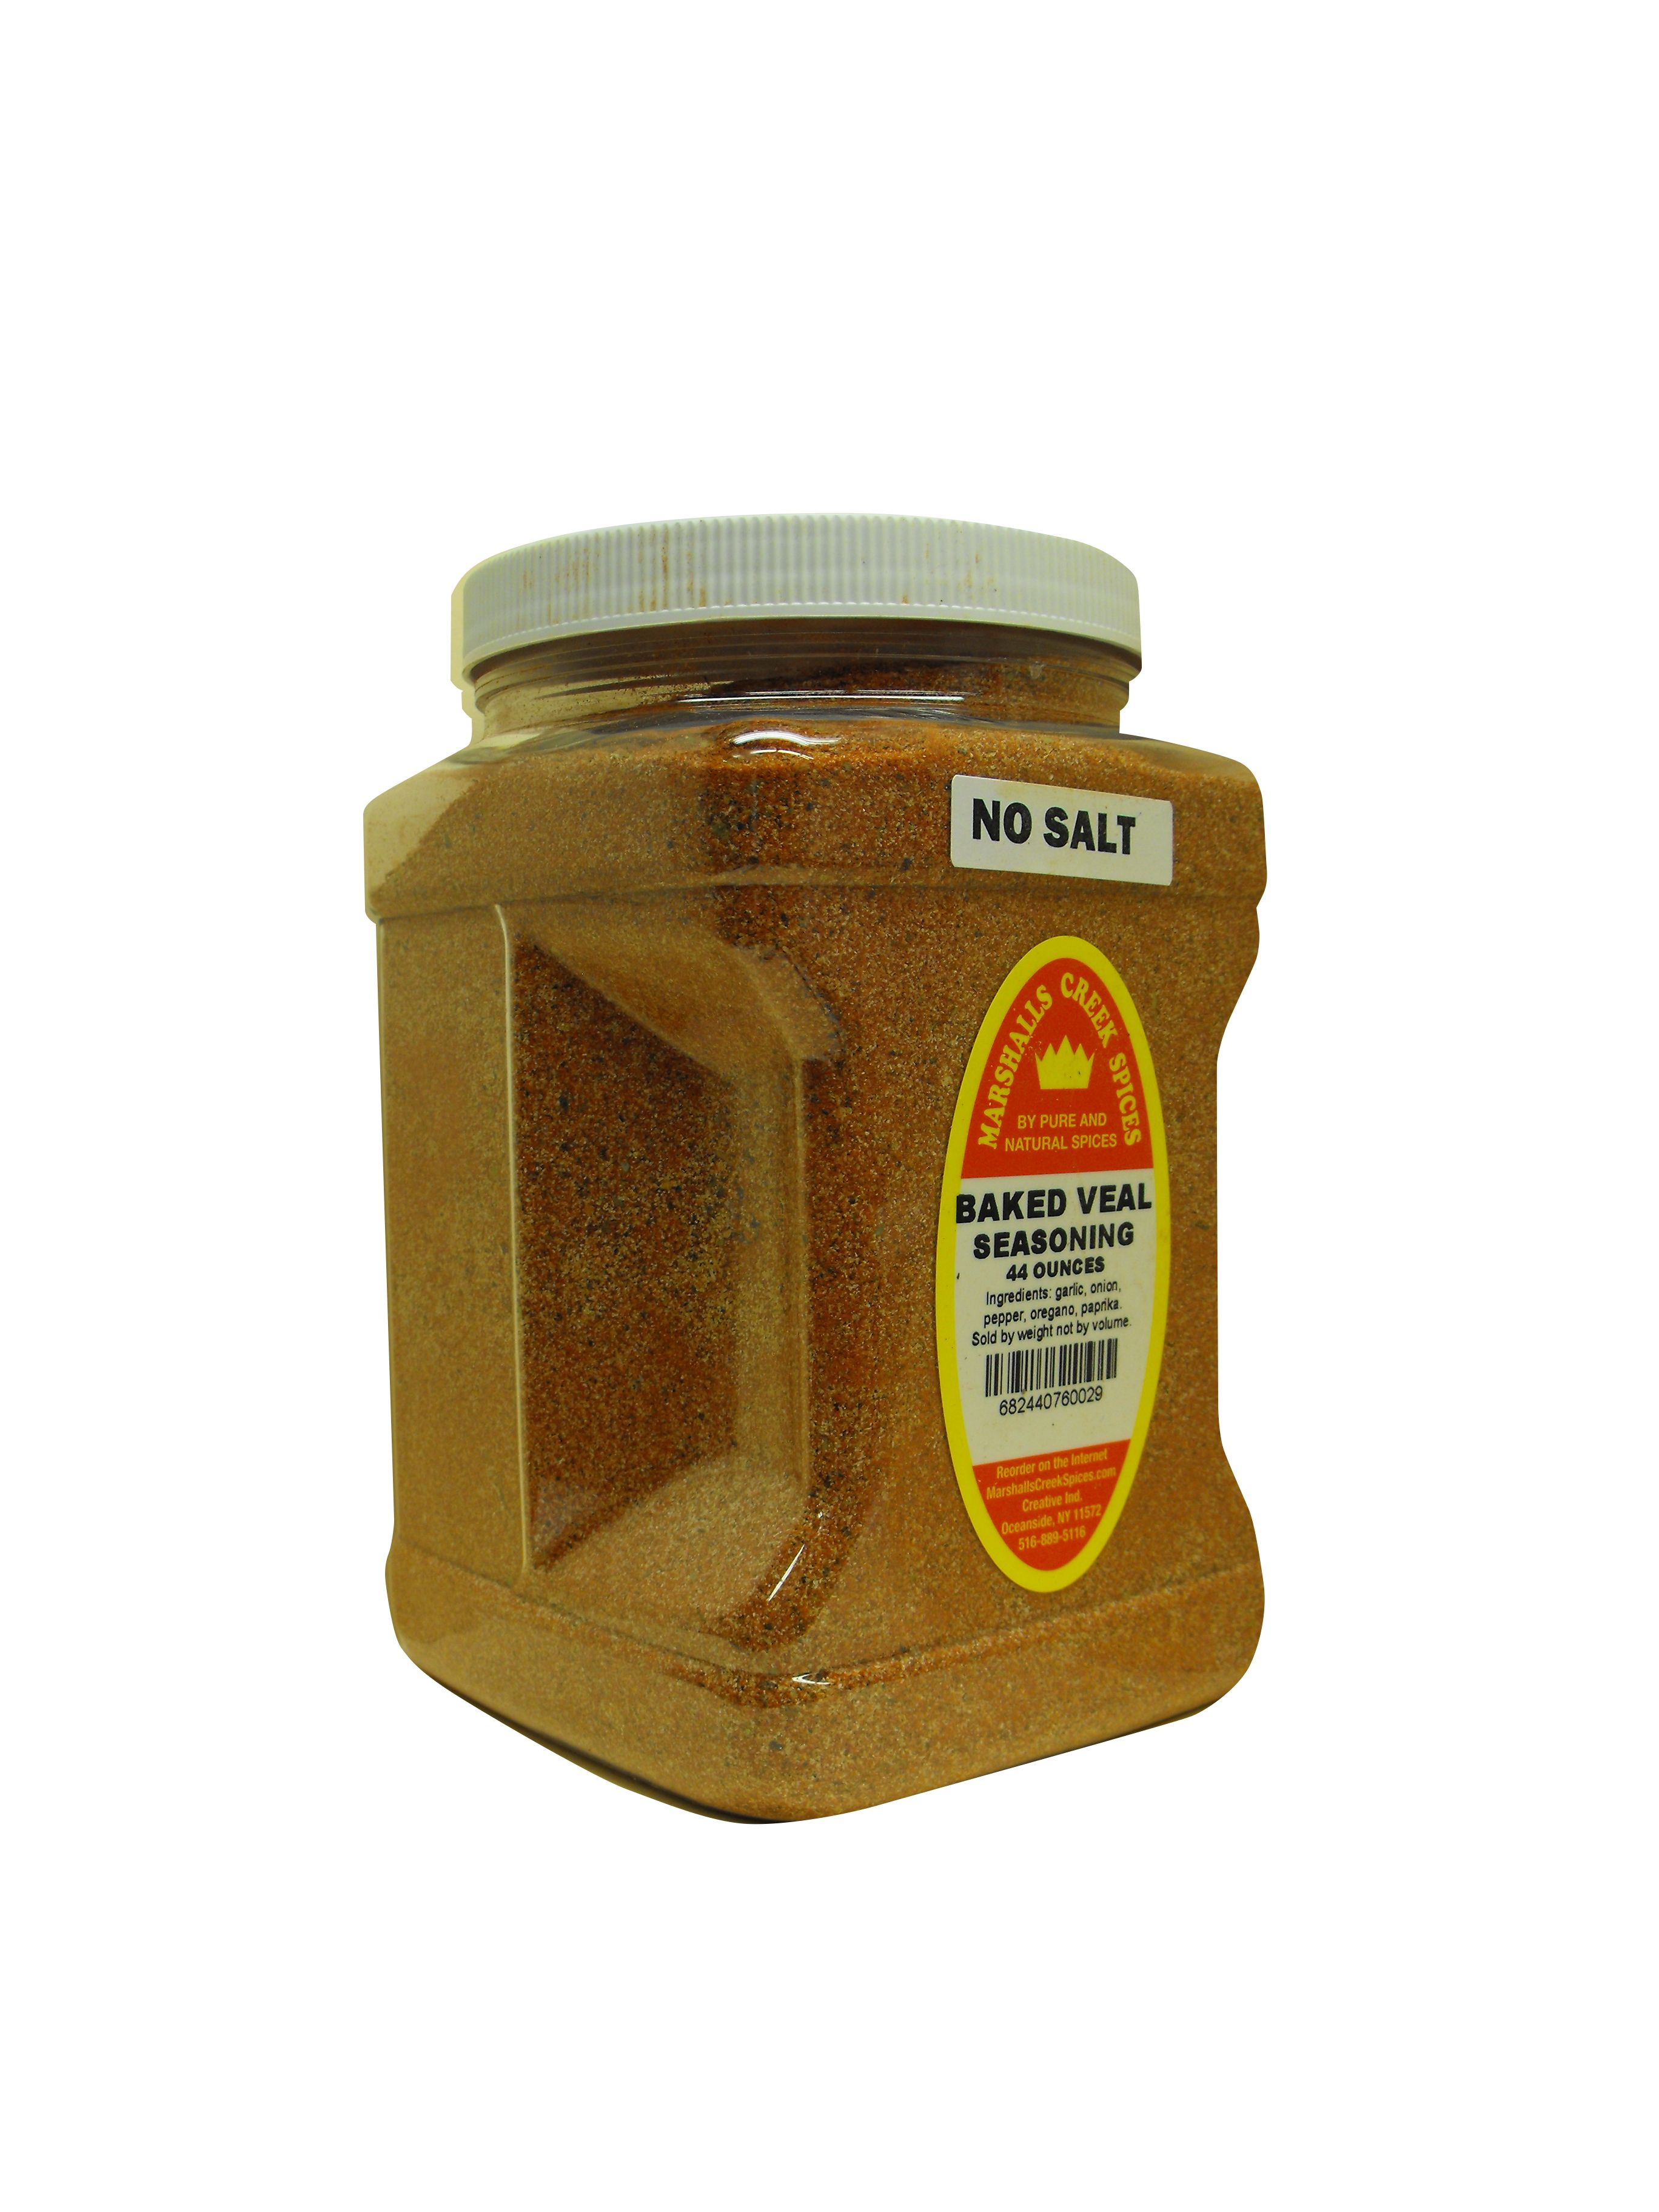 Family Size Marshalls Creek Spices Baked Veal No salt Seasoning, 44 Ounce by